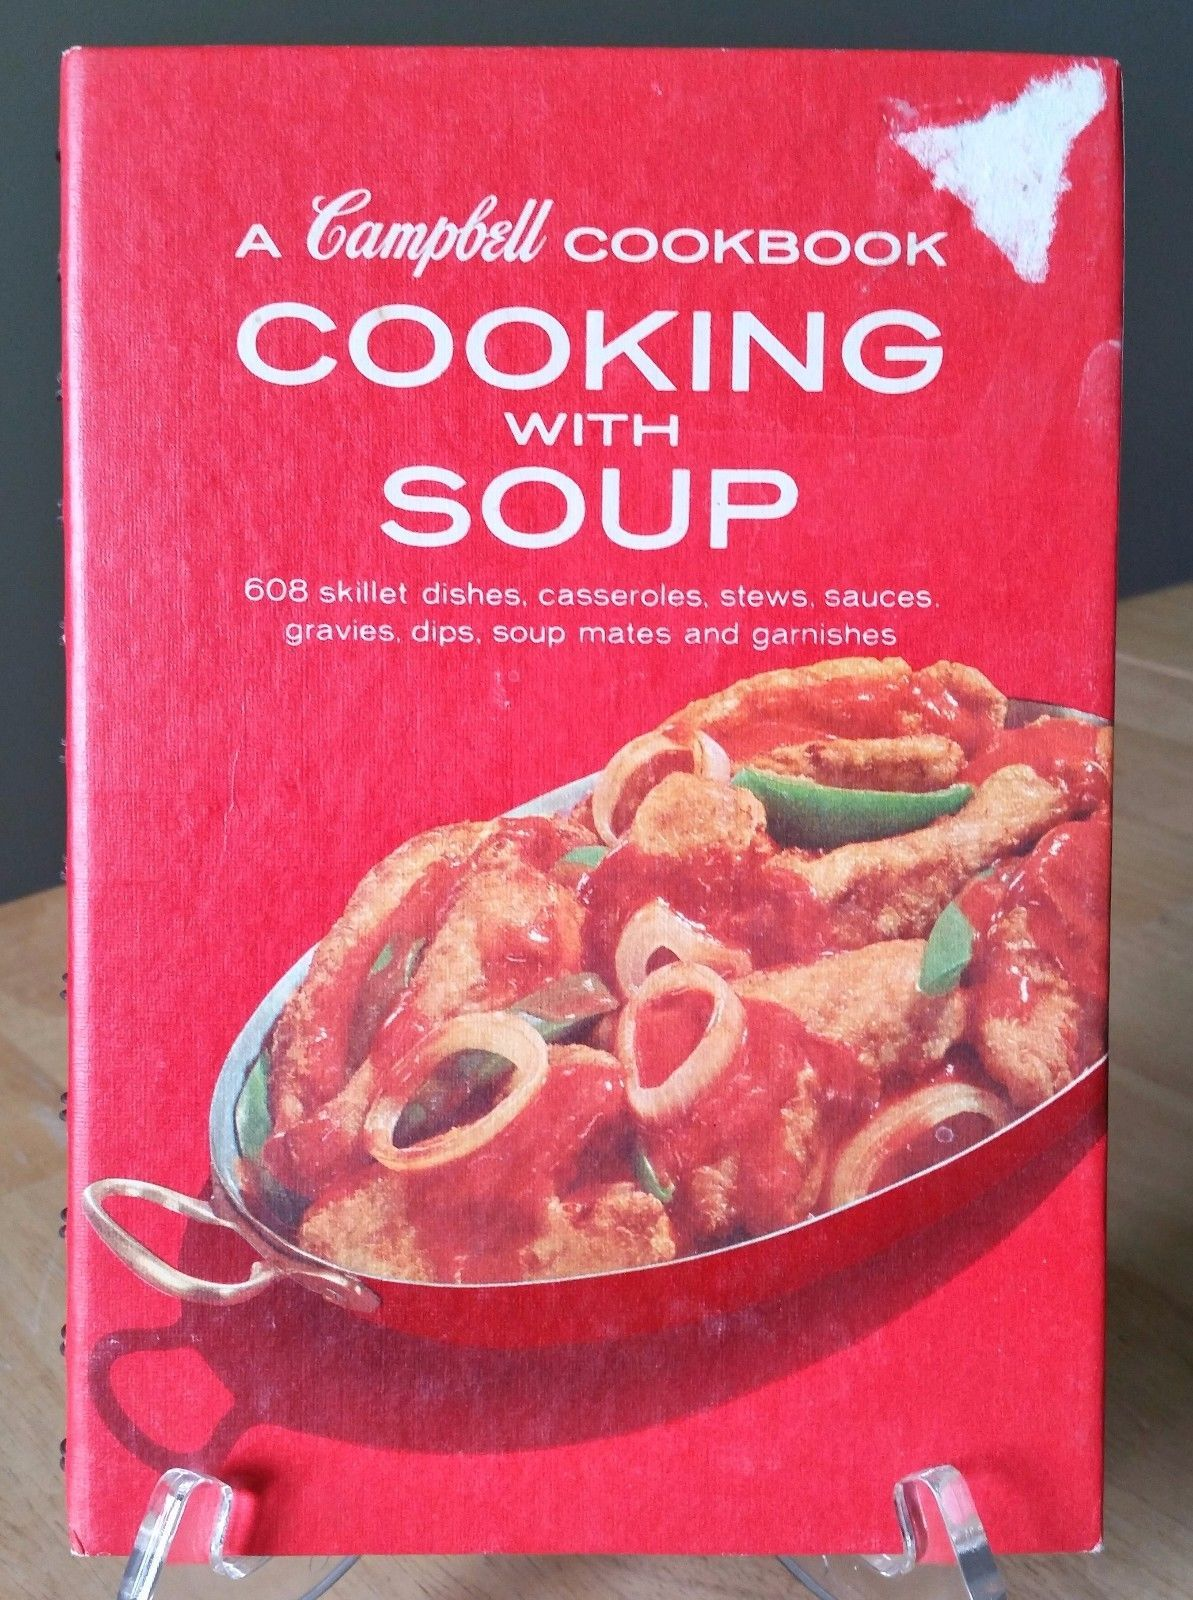 Primary image for A Campbell Cookbook Cooking With Soup 608 Dishes Recipes Spiral Bound Red 1972